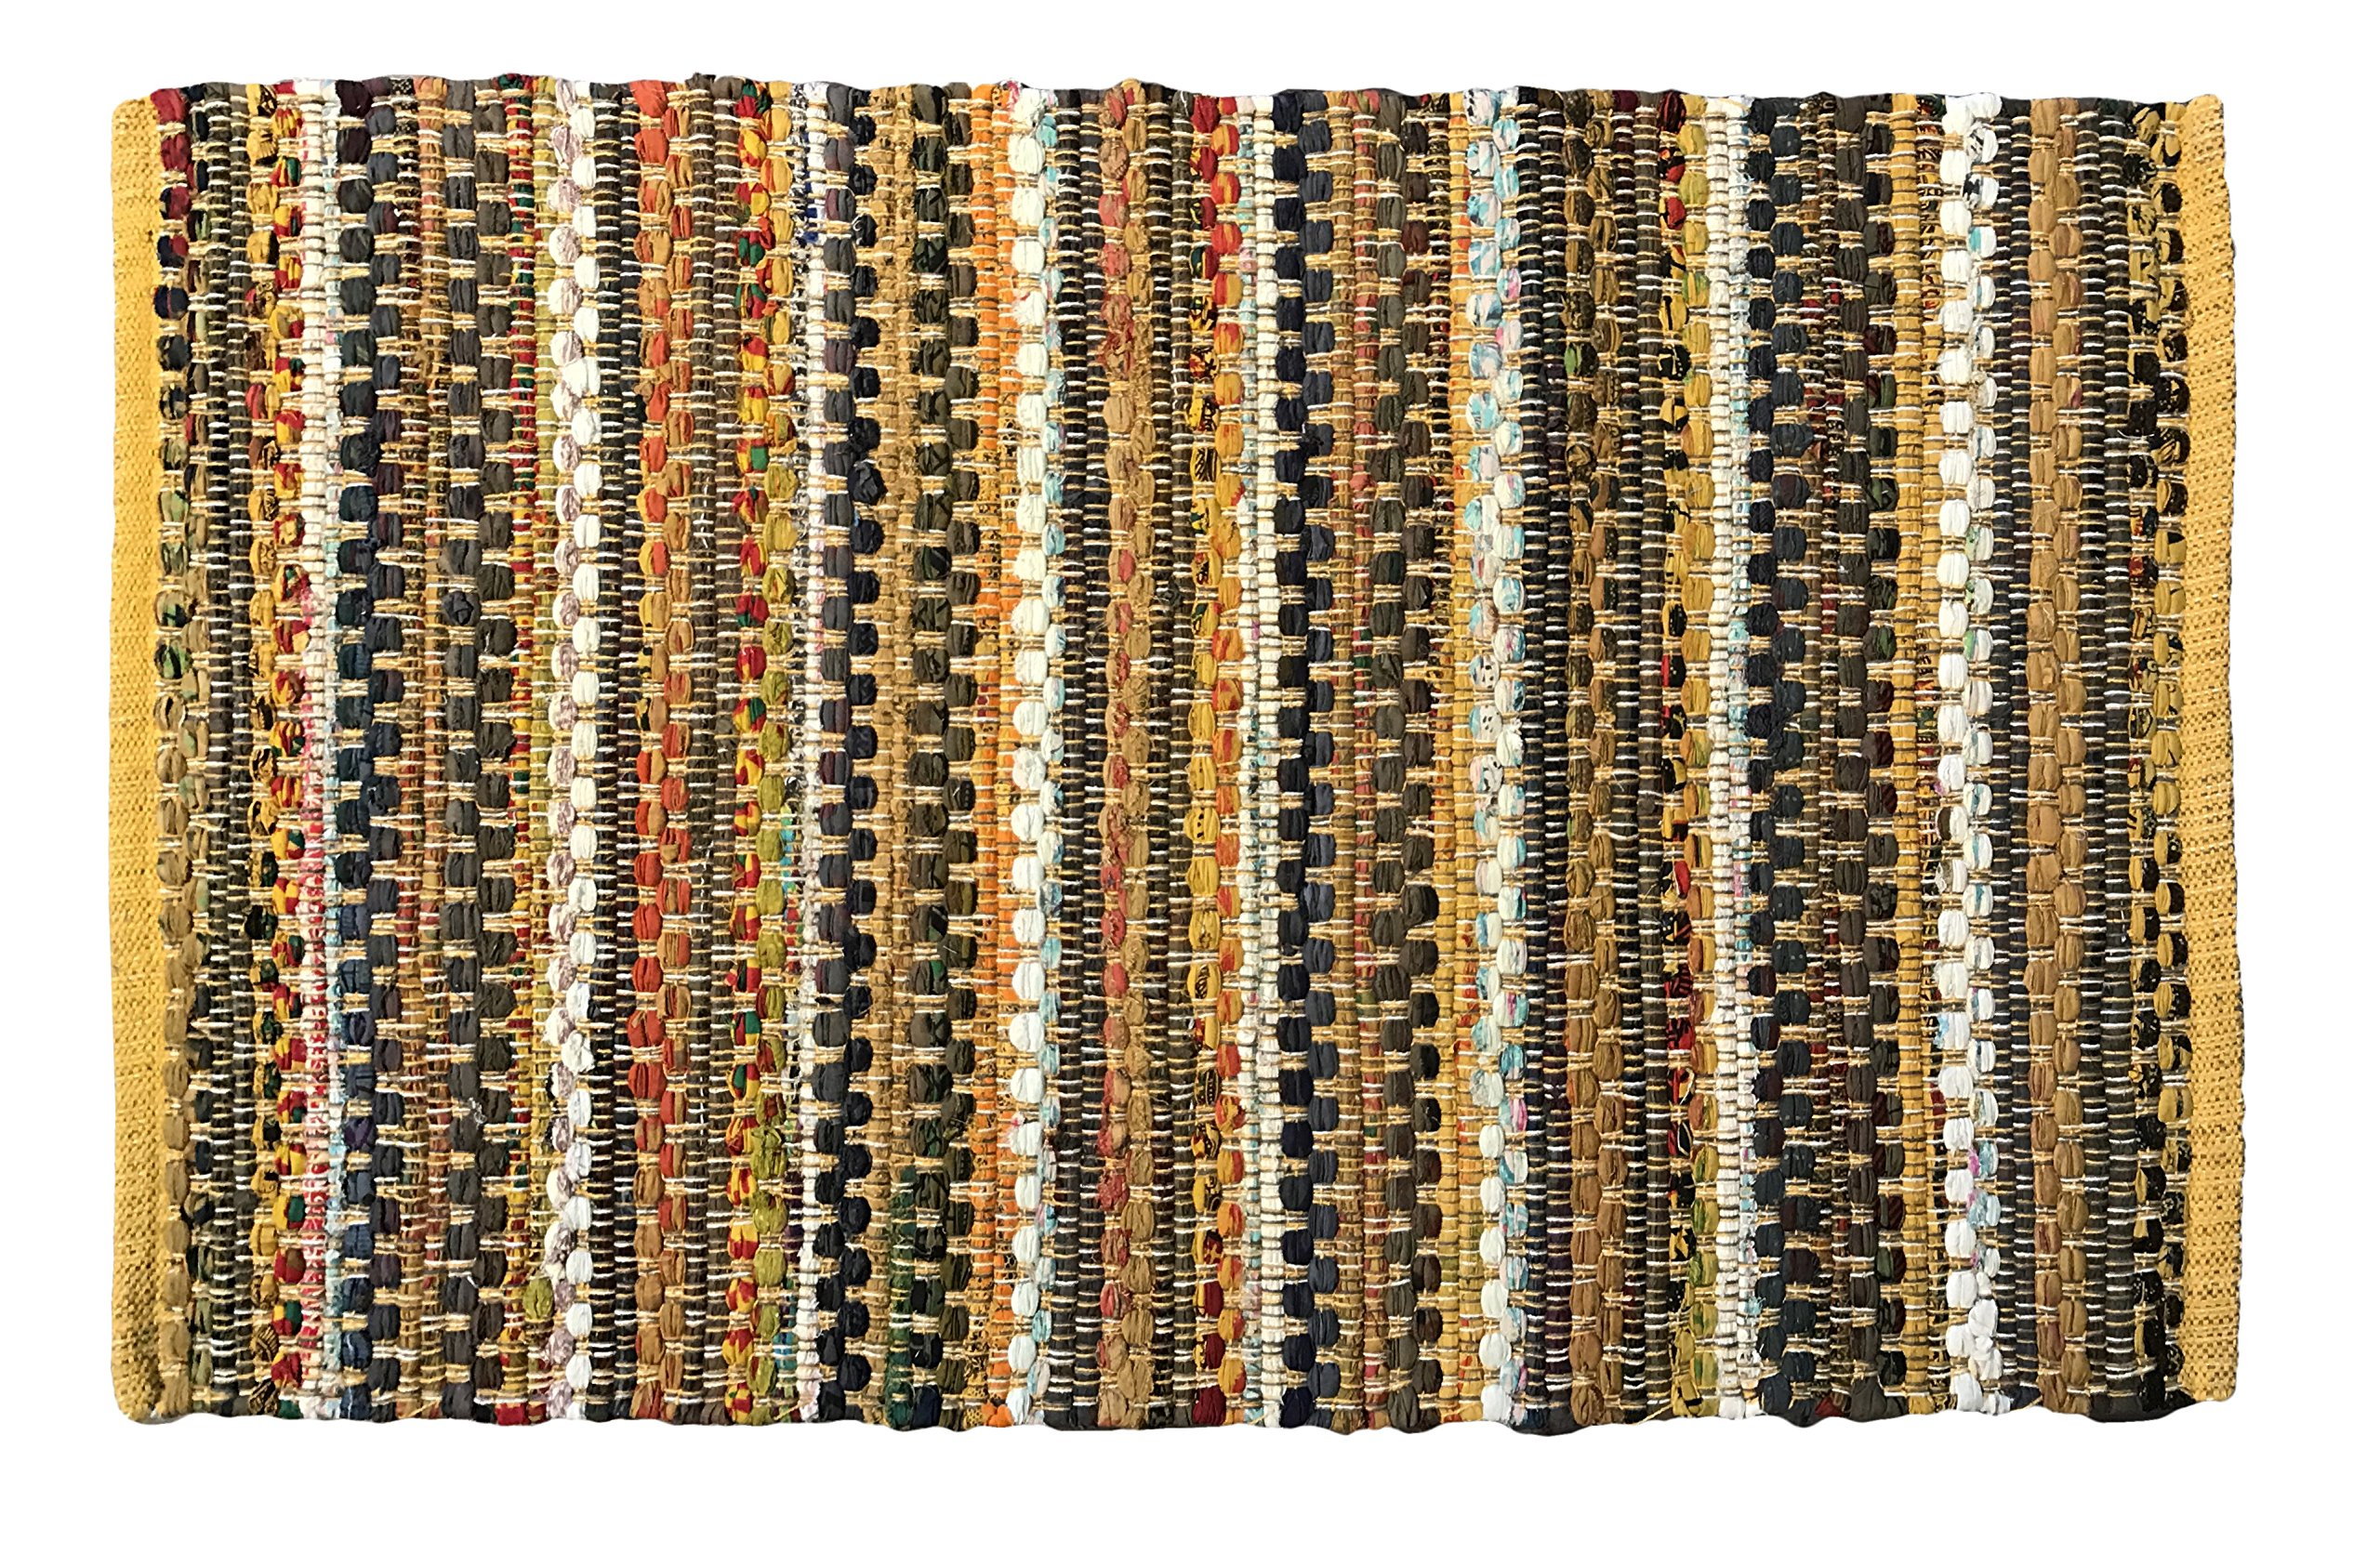 2'x3' Handwoven Cotton Area Rug, Made by Skilled Artisans in India (Yellow)